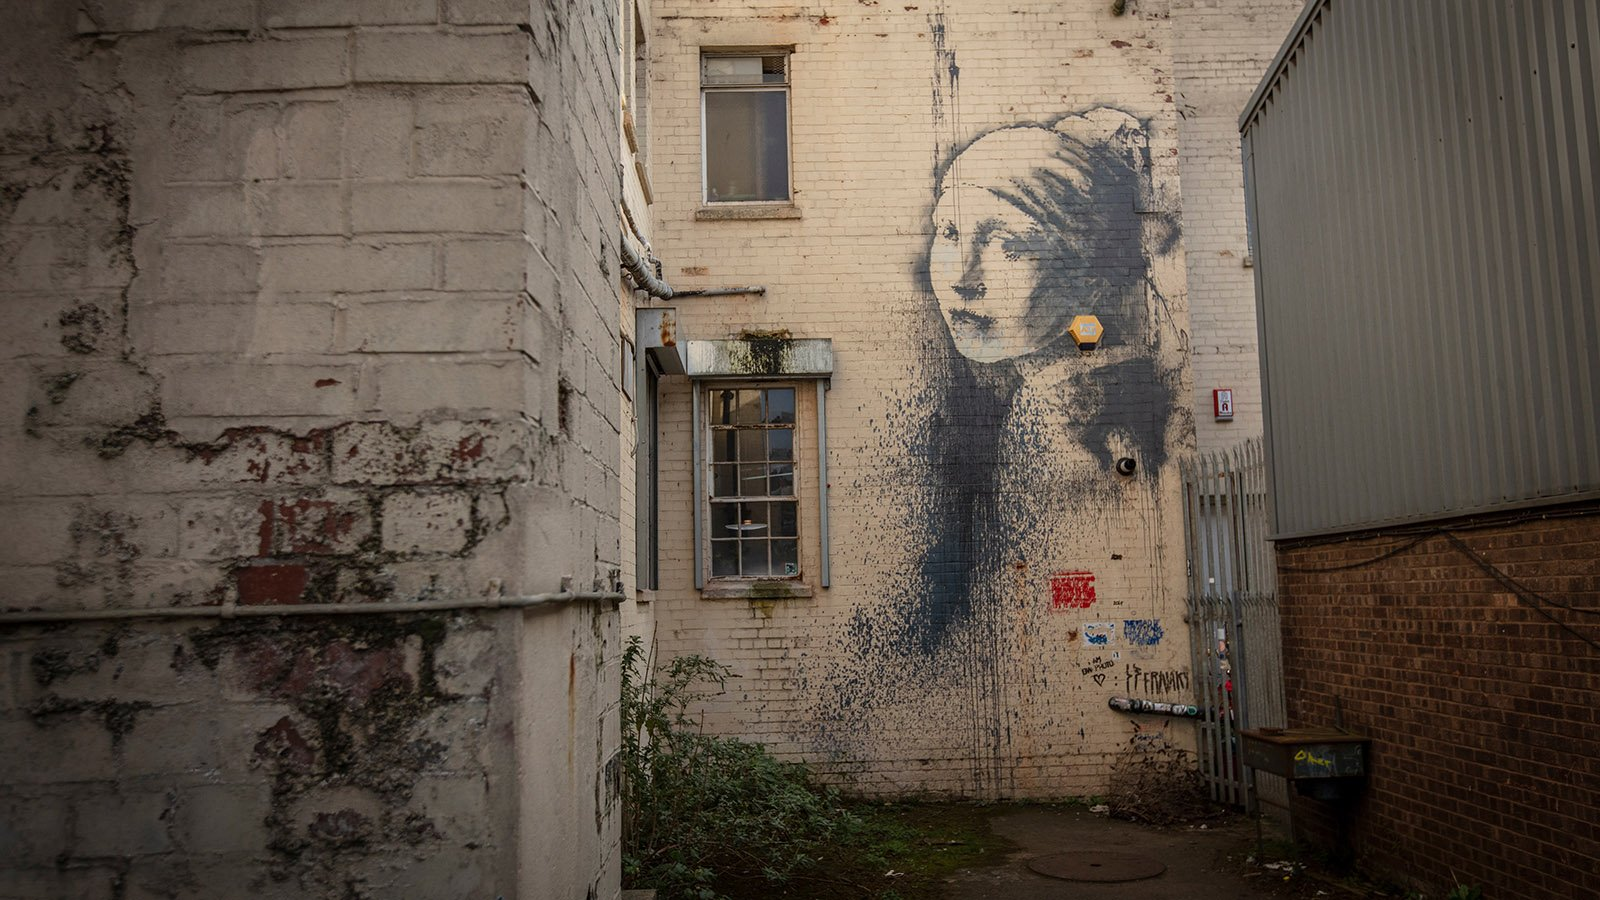 Guide to Finding Banksy in Bristol - Girl with a Pierced Eardrum (Homage to Vermeer)